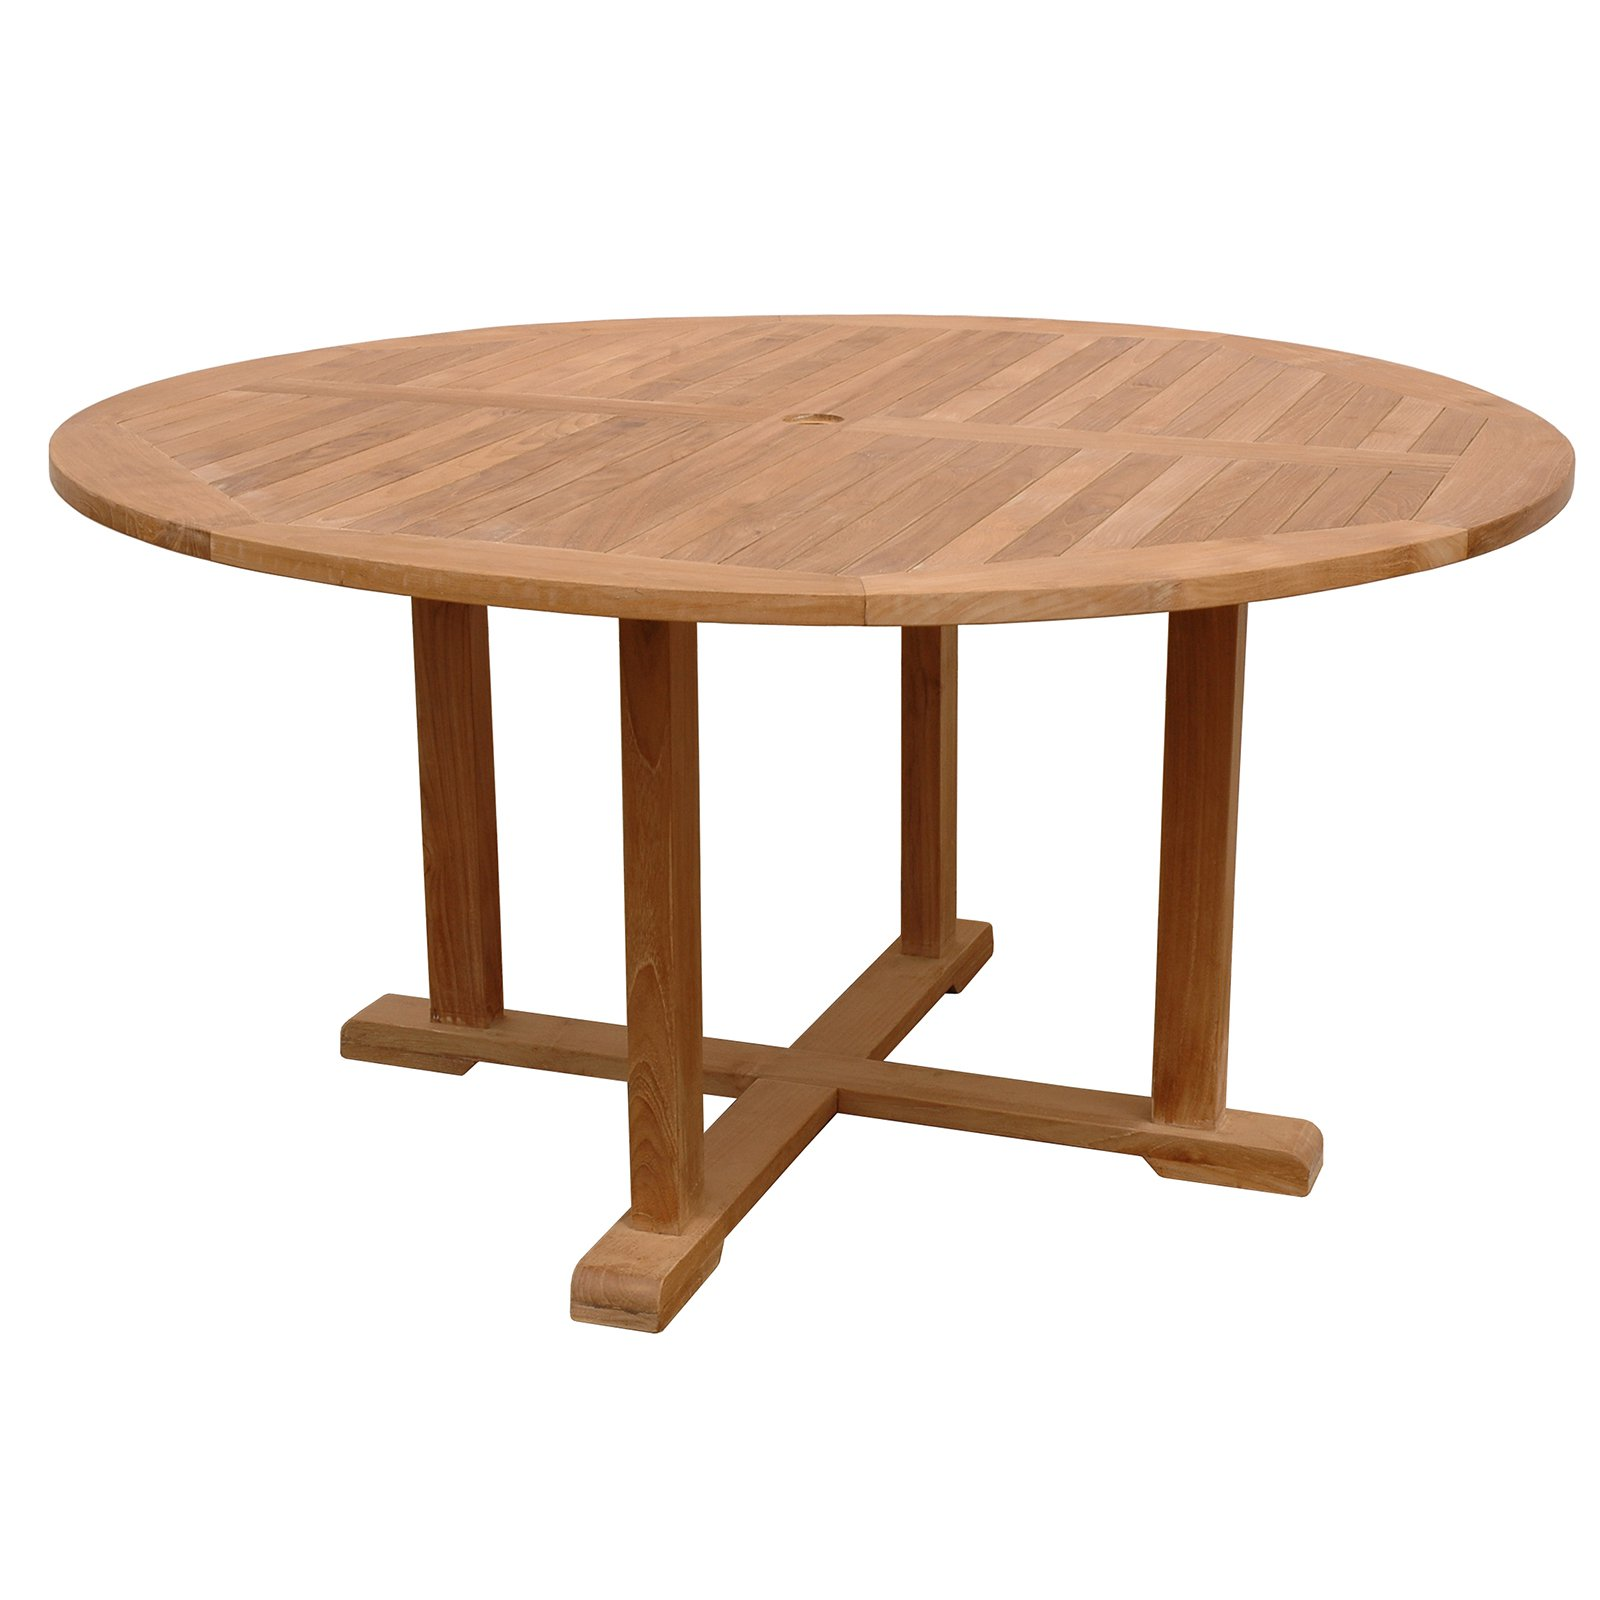 Anderson Teak Tosca Round Outdoor Dining Table by Anderson Teak